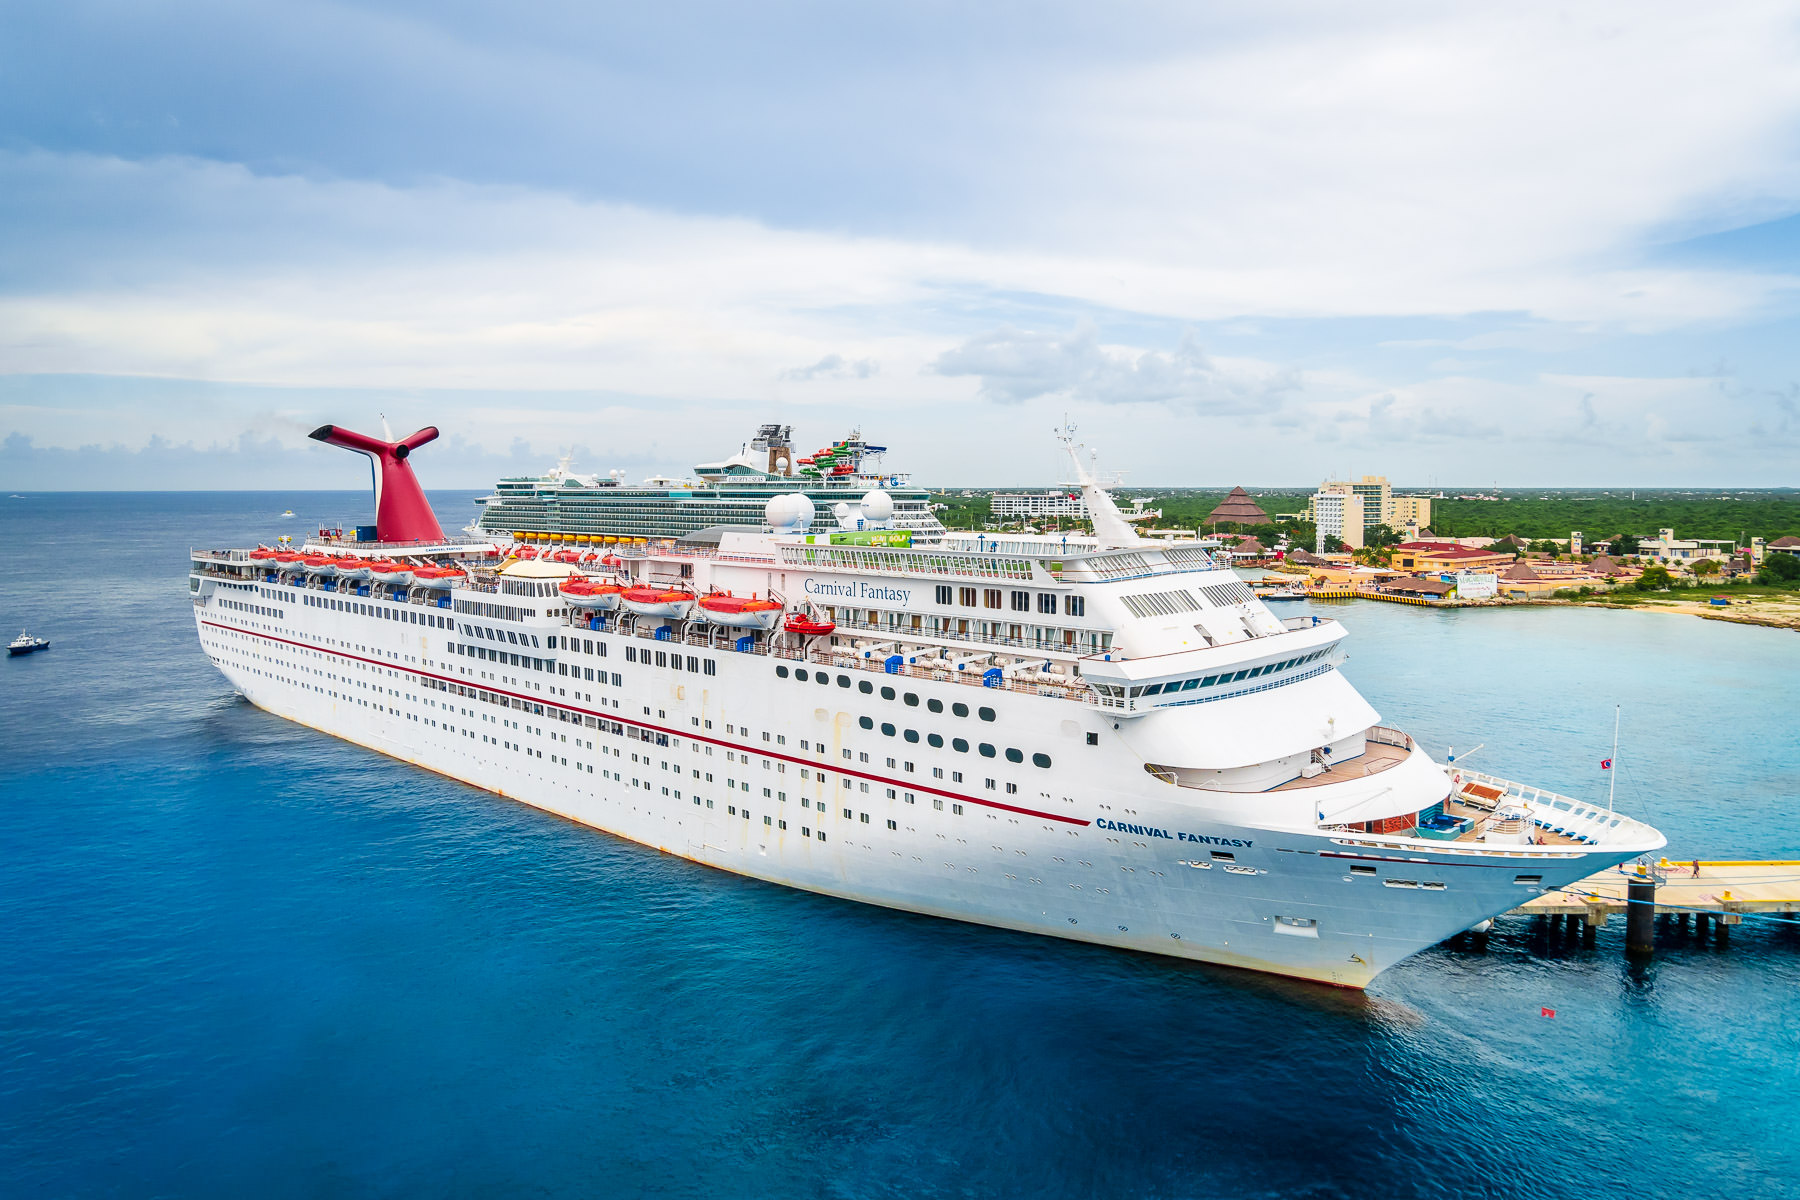 The cruise ship Carnival Fantasy, docked at Puerta Maya, Cozumel, Mexico.